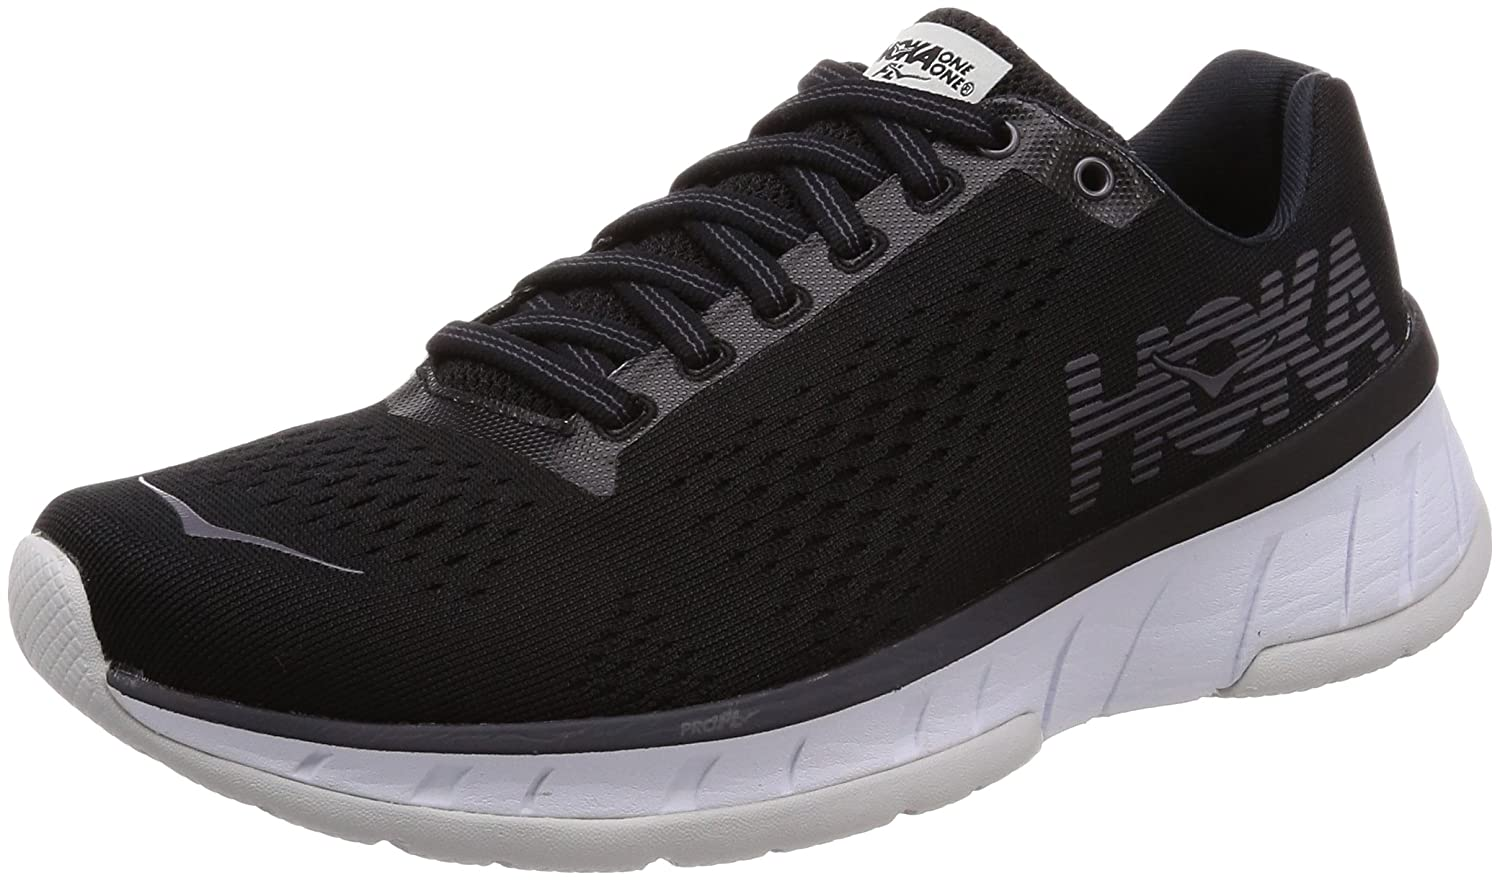 HOKA ONE ONE Women's Cavu Running Shoe B071VVNZJJ 6 B(M) US|Black/White